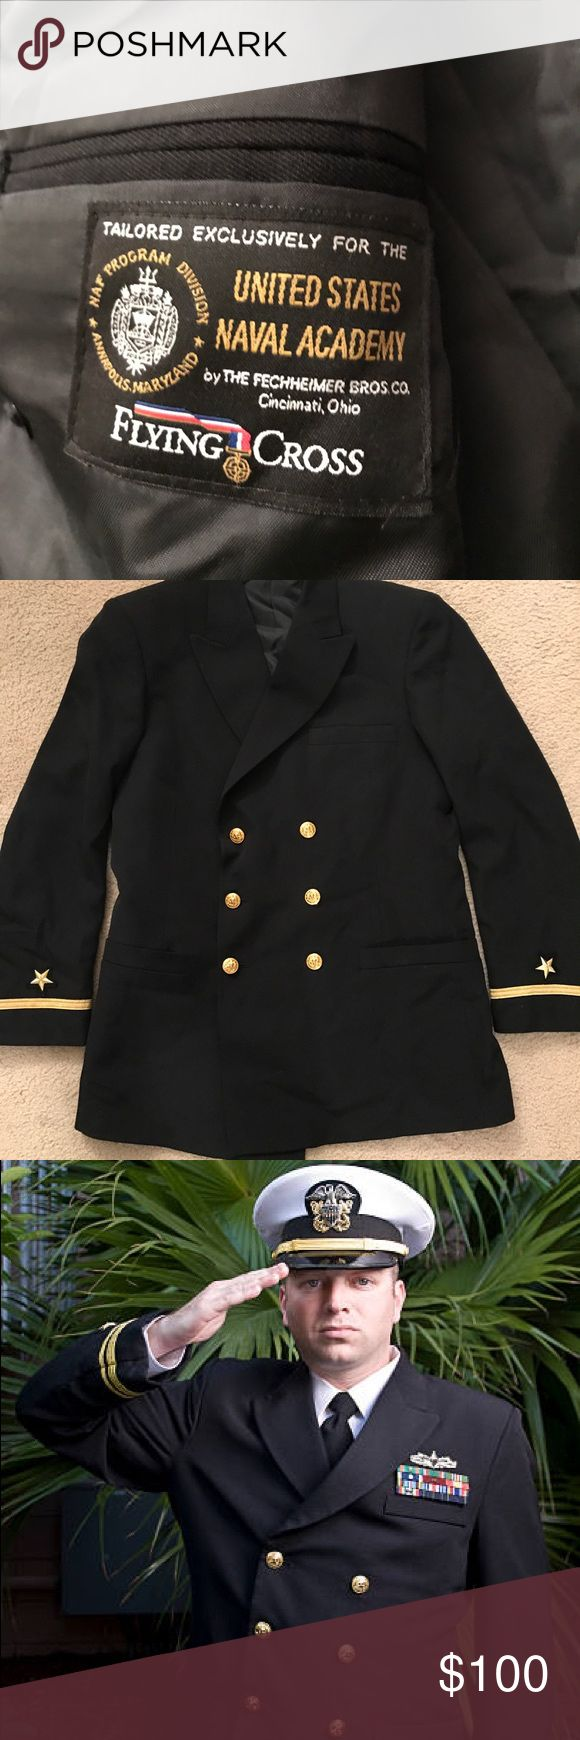 United States Navy Ensign (0-1 - officer) blazer. Only 1% of the population in this country serves in the military. 82% make up enlisted ranks and 18% are officers. Get your hands on this RARE commodity that only 18% of the brave men and women that serve in the U.S Navy wear. Your friends and family will want to see this!!! This is PRICELESS!!! U.S Navy Suits & Blazers Sport Coats & Blazers